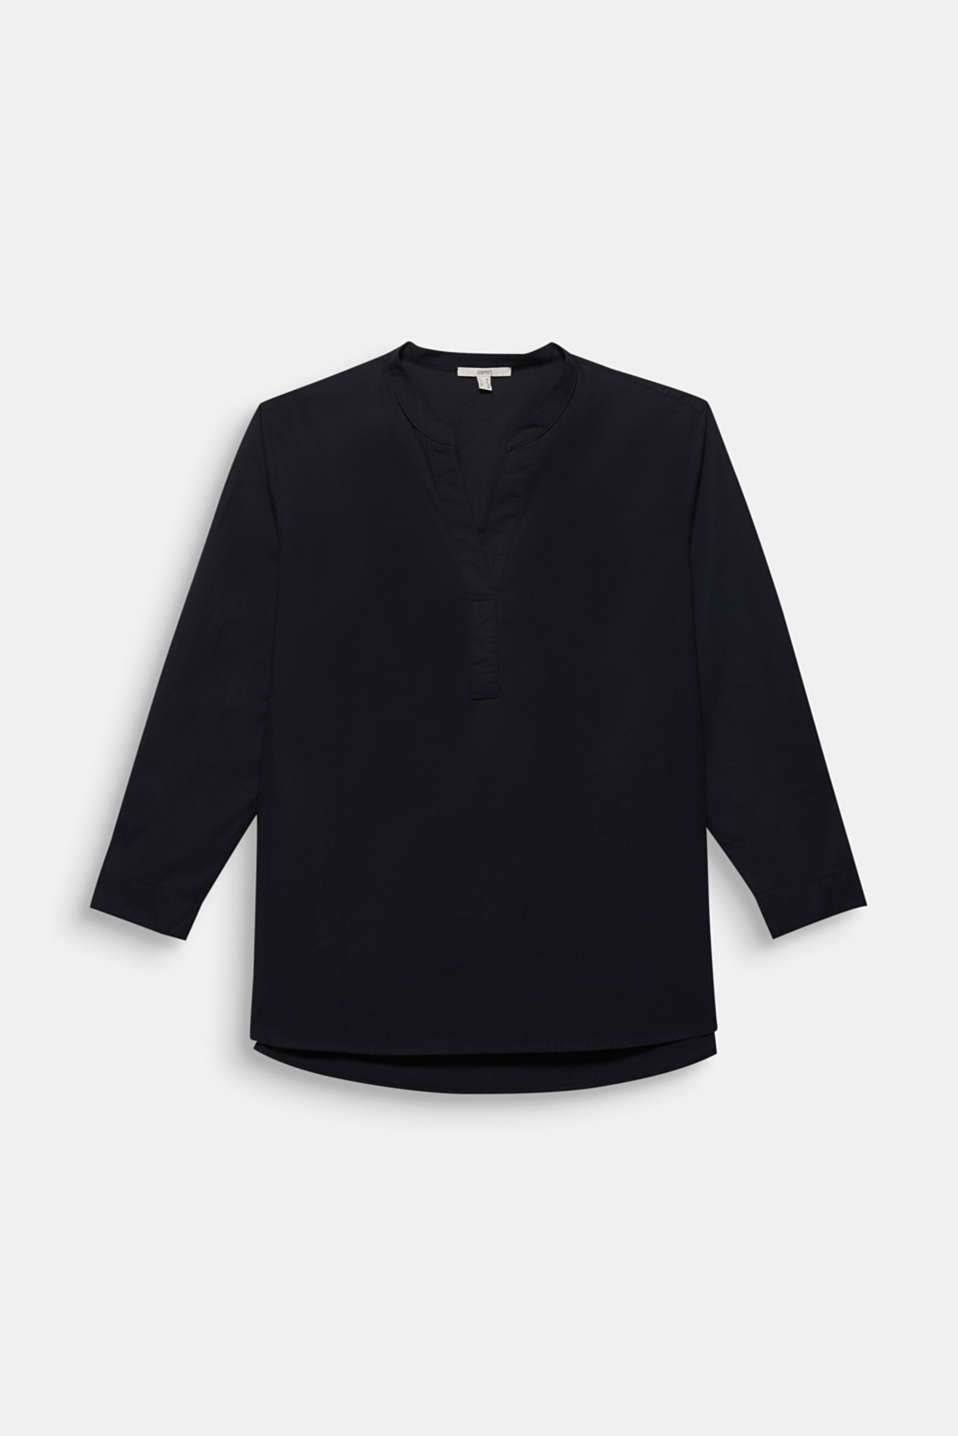 CURVY cotton shirt blouse, BLACK, detail image number 7